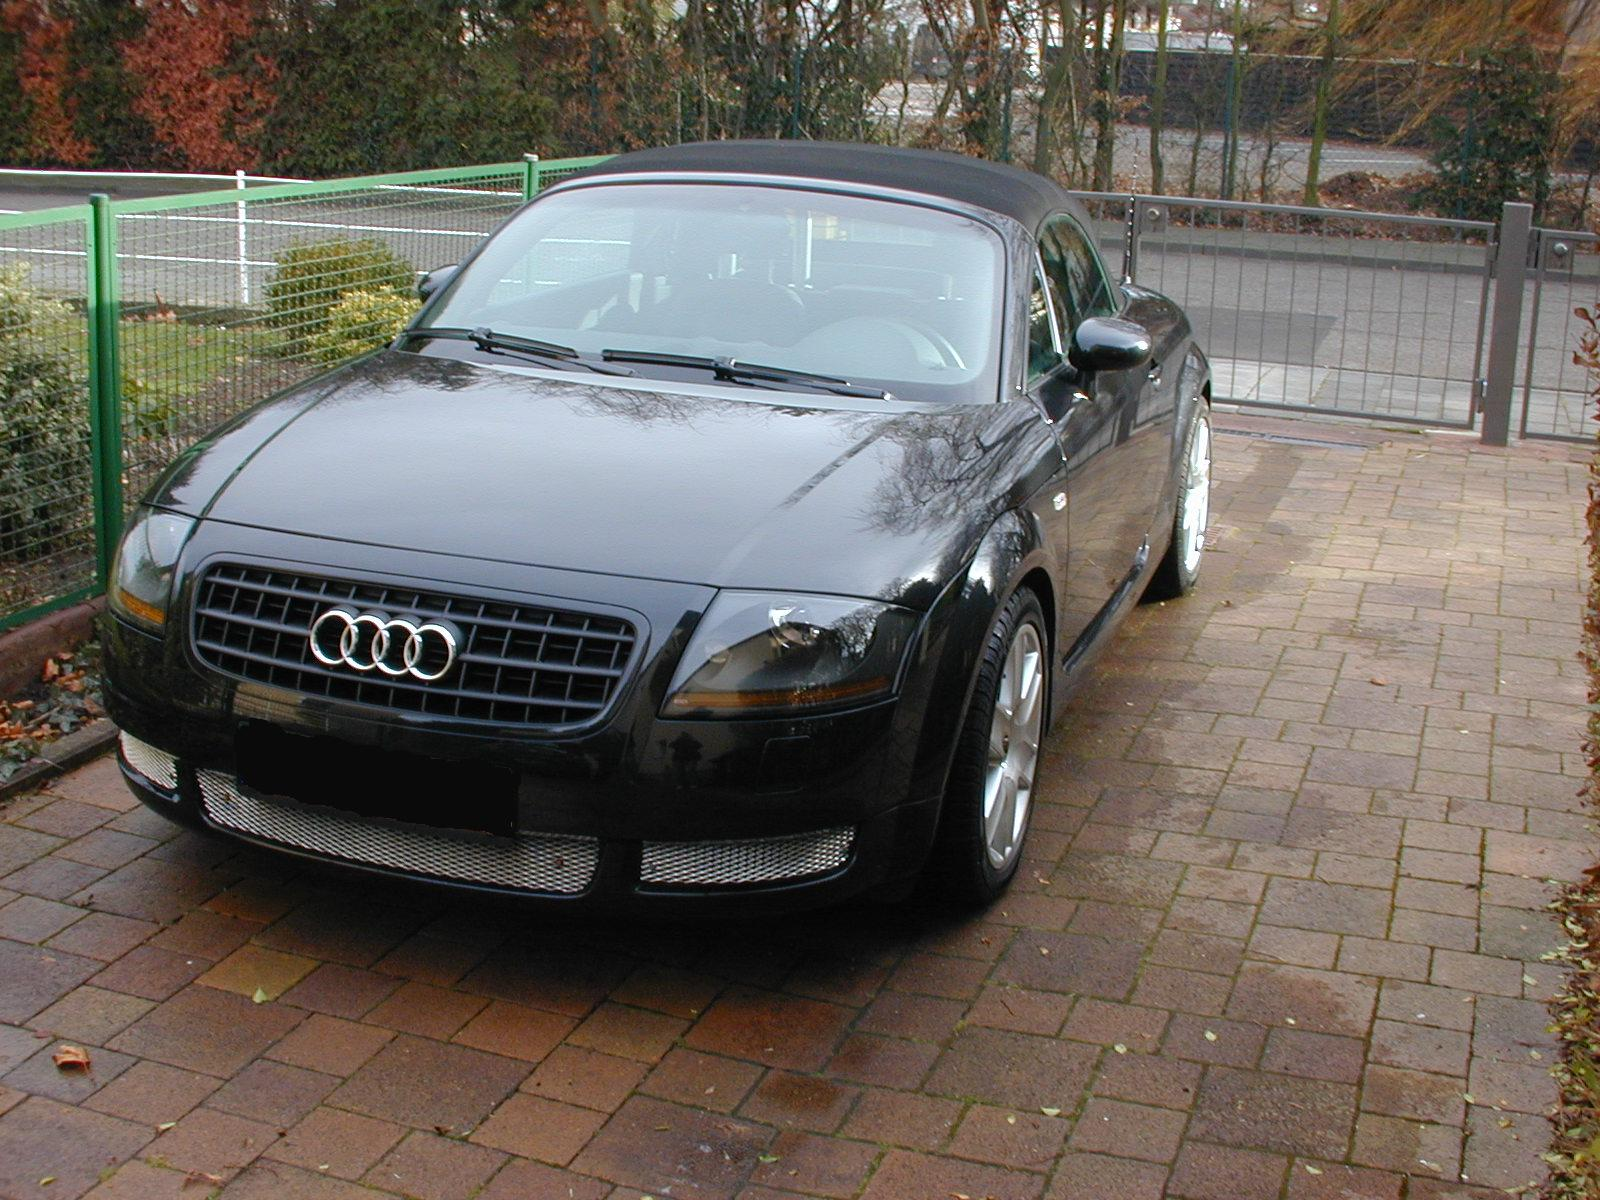 Engine Tuning With Water Injection Audi Tt 18t 8n3 Water Injecti